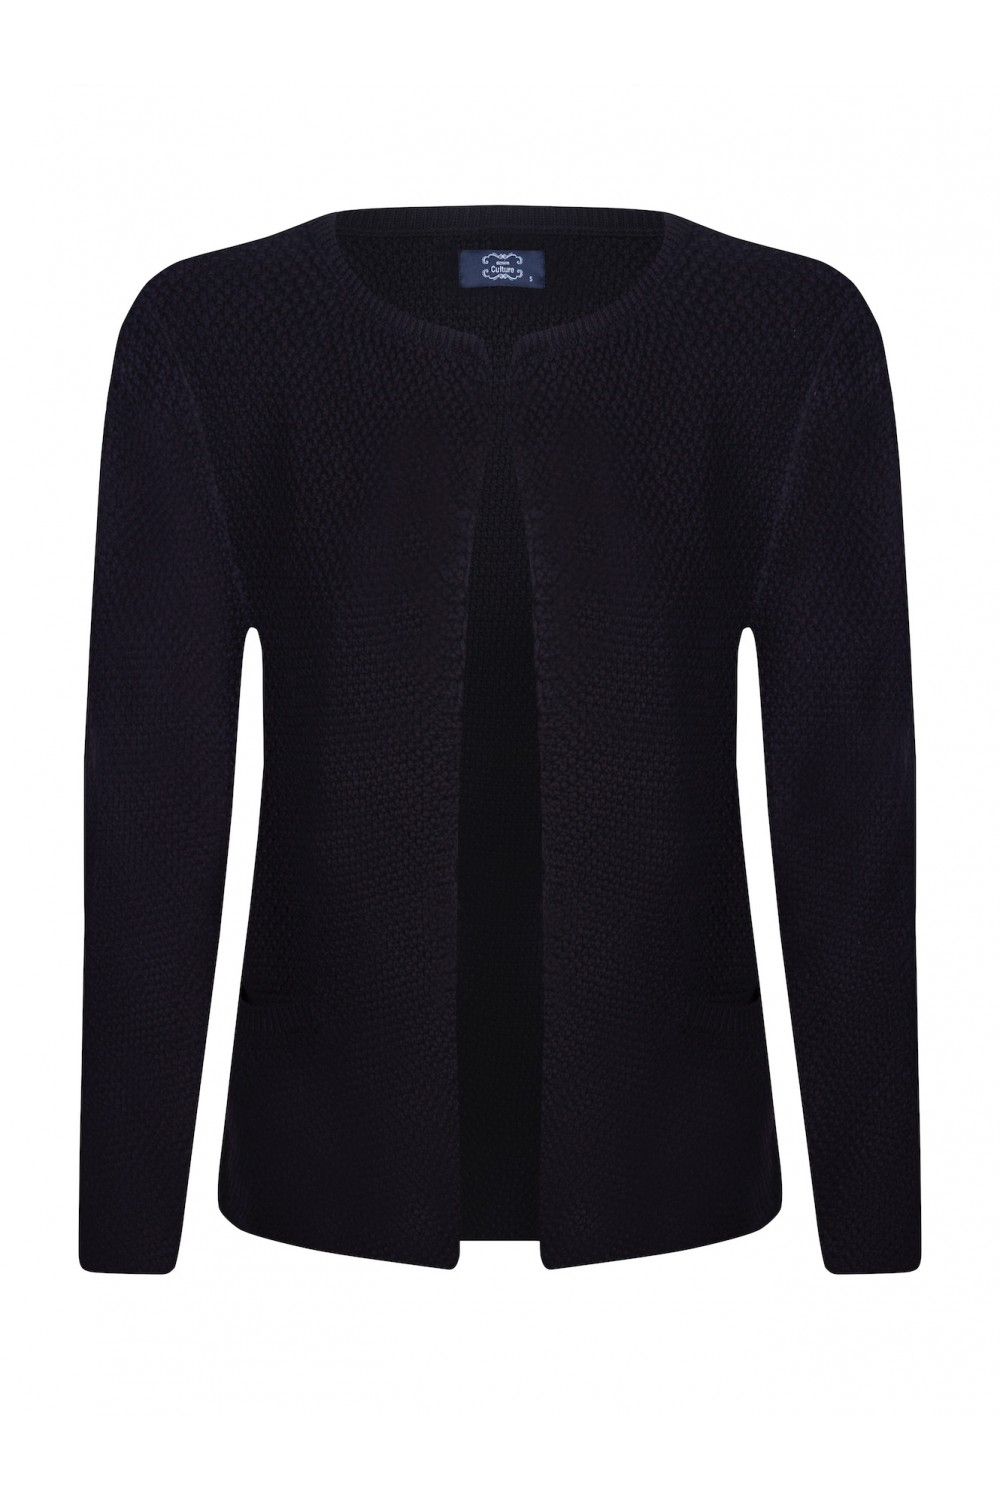 Women's Cardigan Hook Crew Neck Black